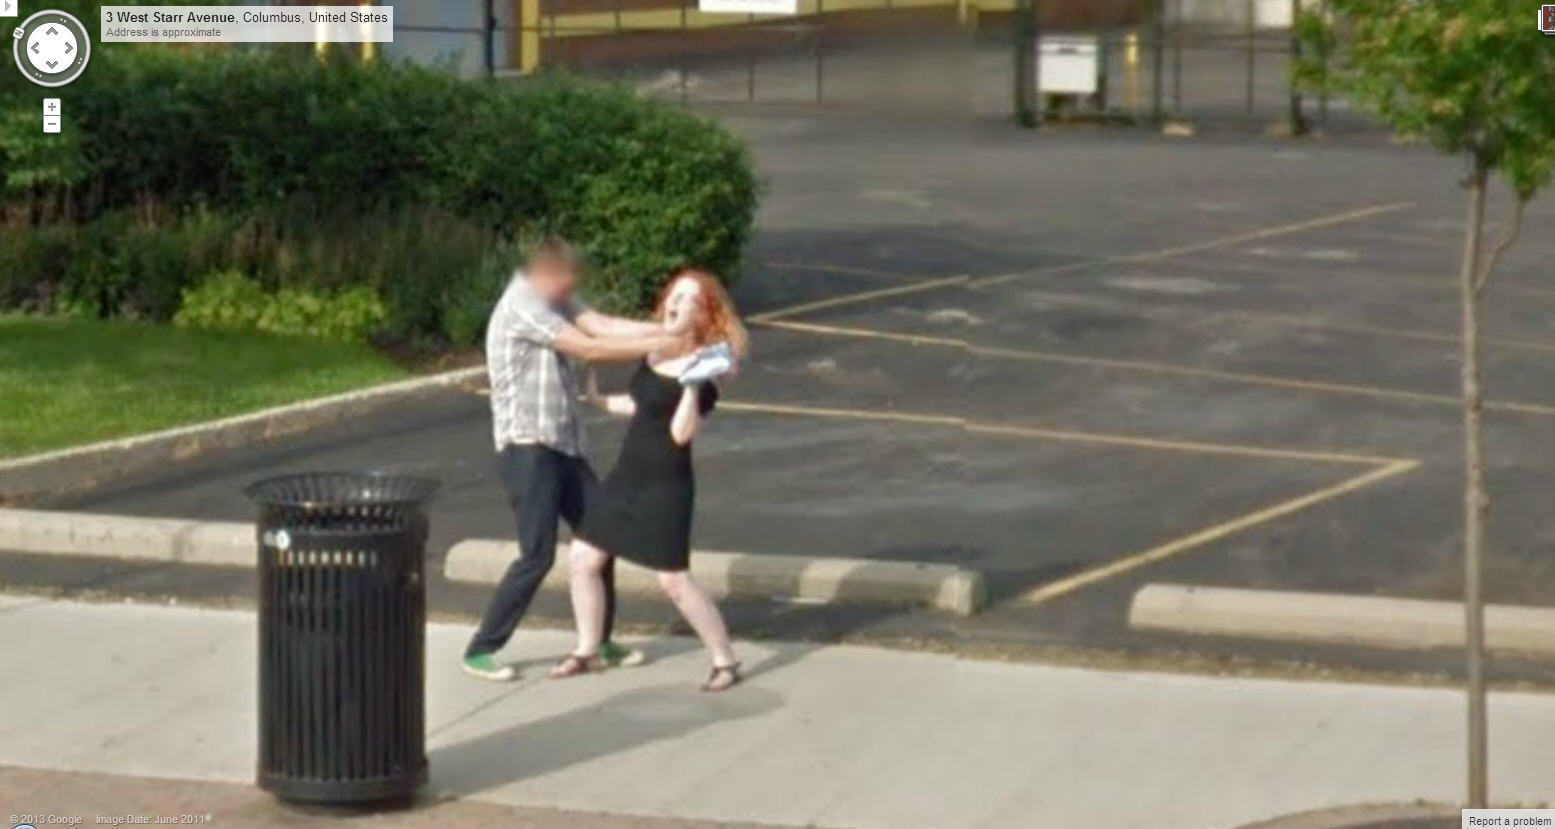 Google Street View Captures Another Strangling in Process